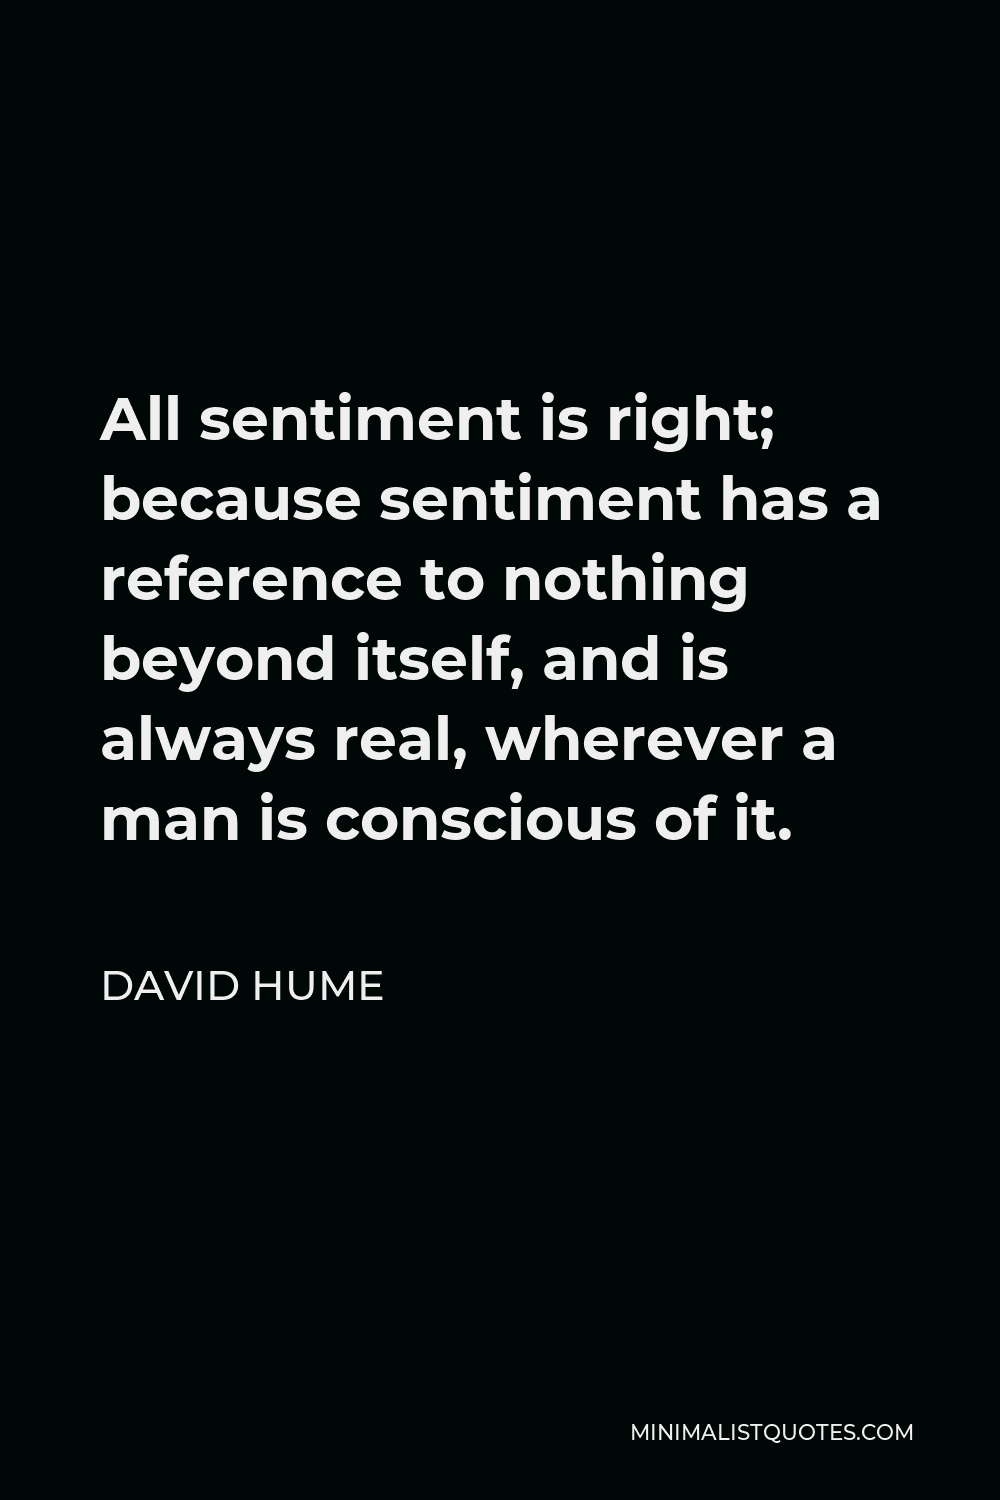 David Hume Quote - All sentiment is right; because sentiment has a reference to nothing beyond itself, and is always real, wherever a man is conscious of it.